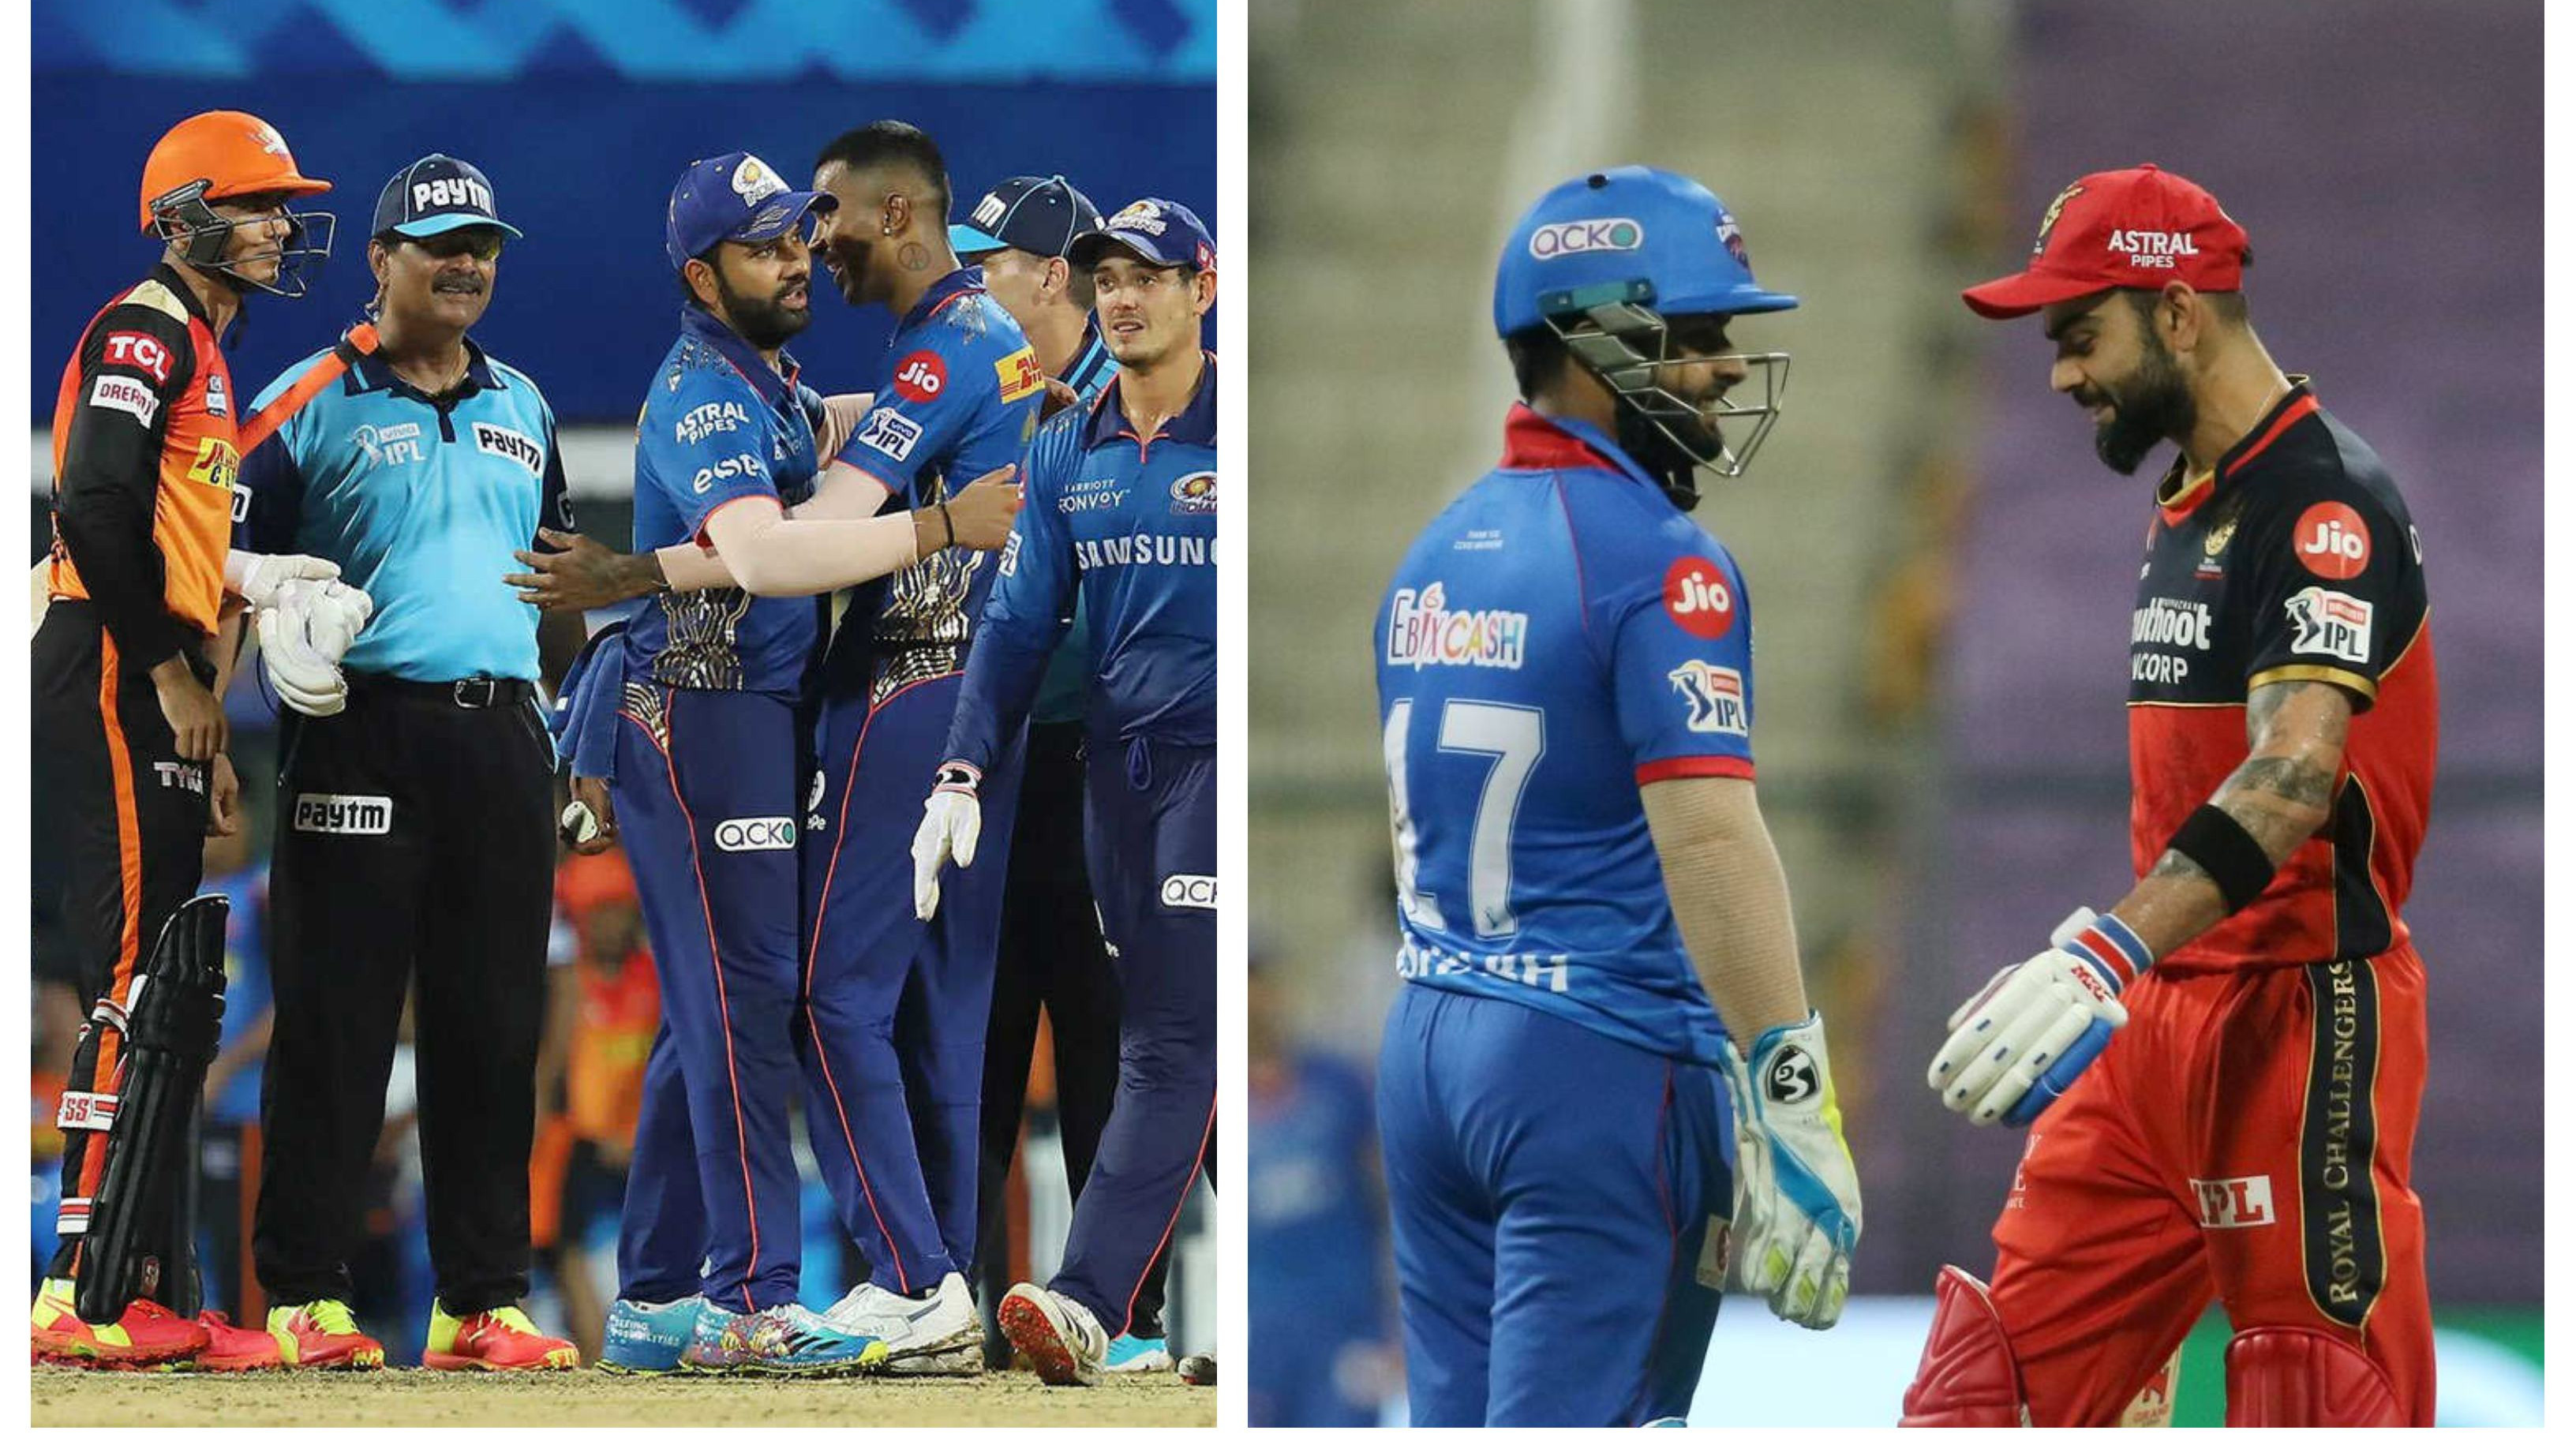 IPL 2021: Last two league games to be played concurrently at 7:30 PM IST, confirms BCCI